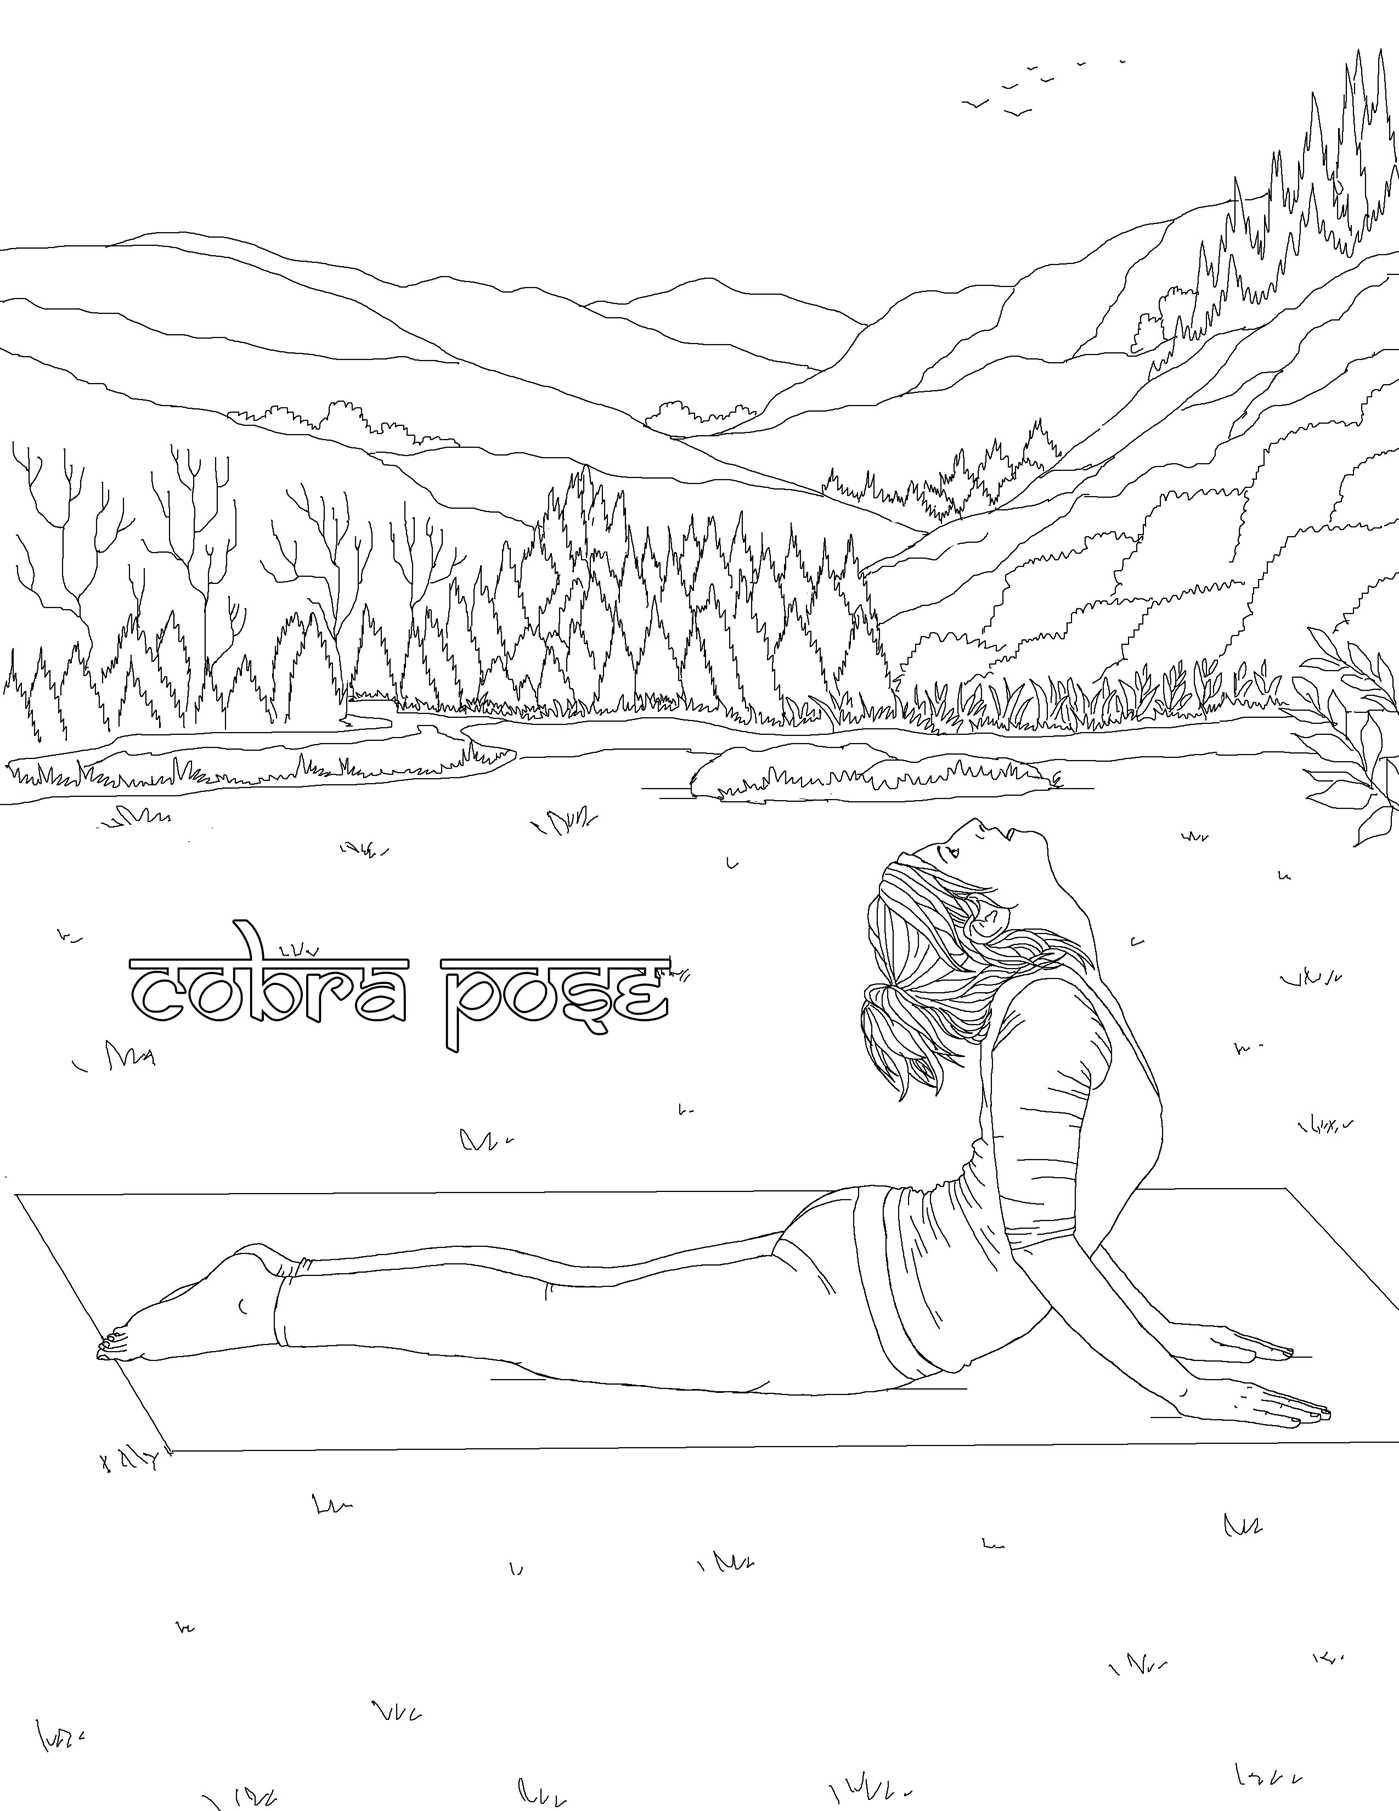 The Yoga Poses Adult Coloring Book 9781682611302in02